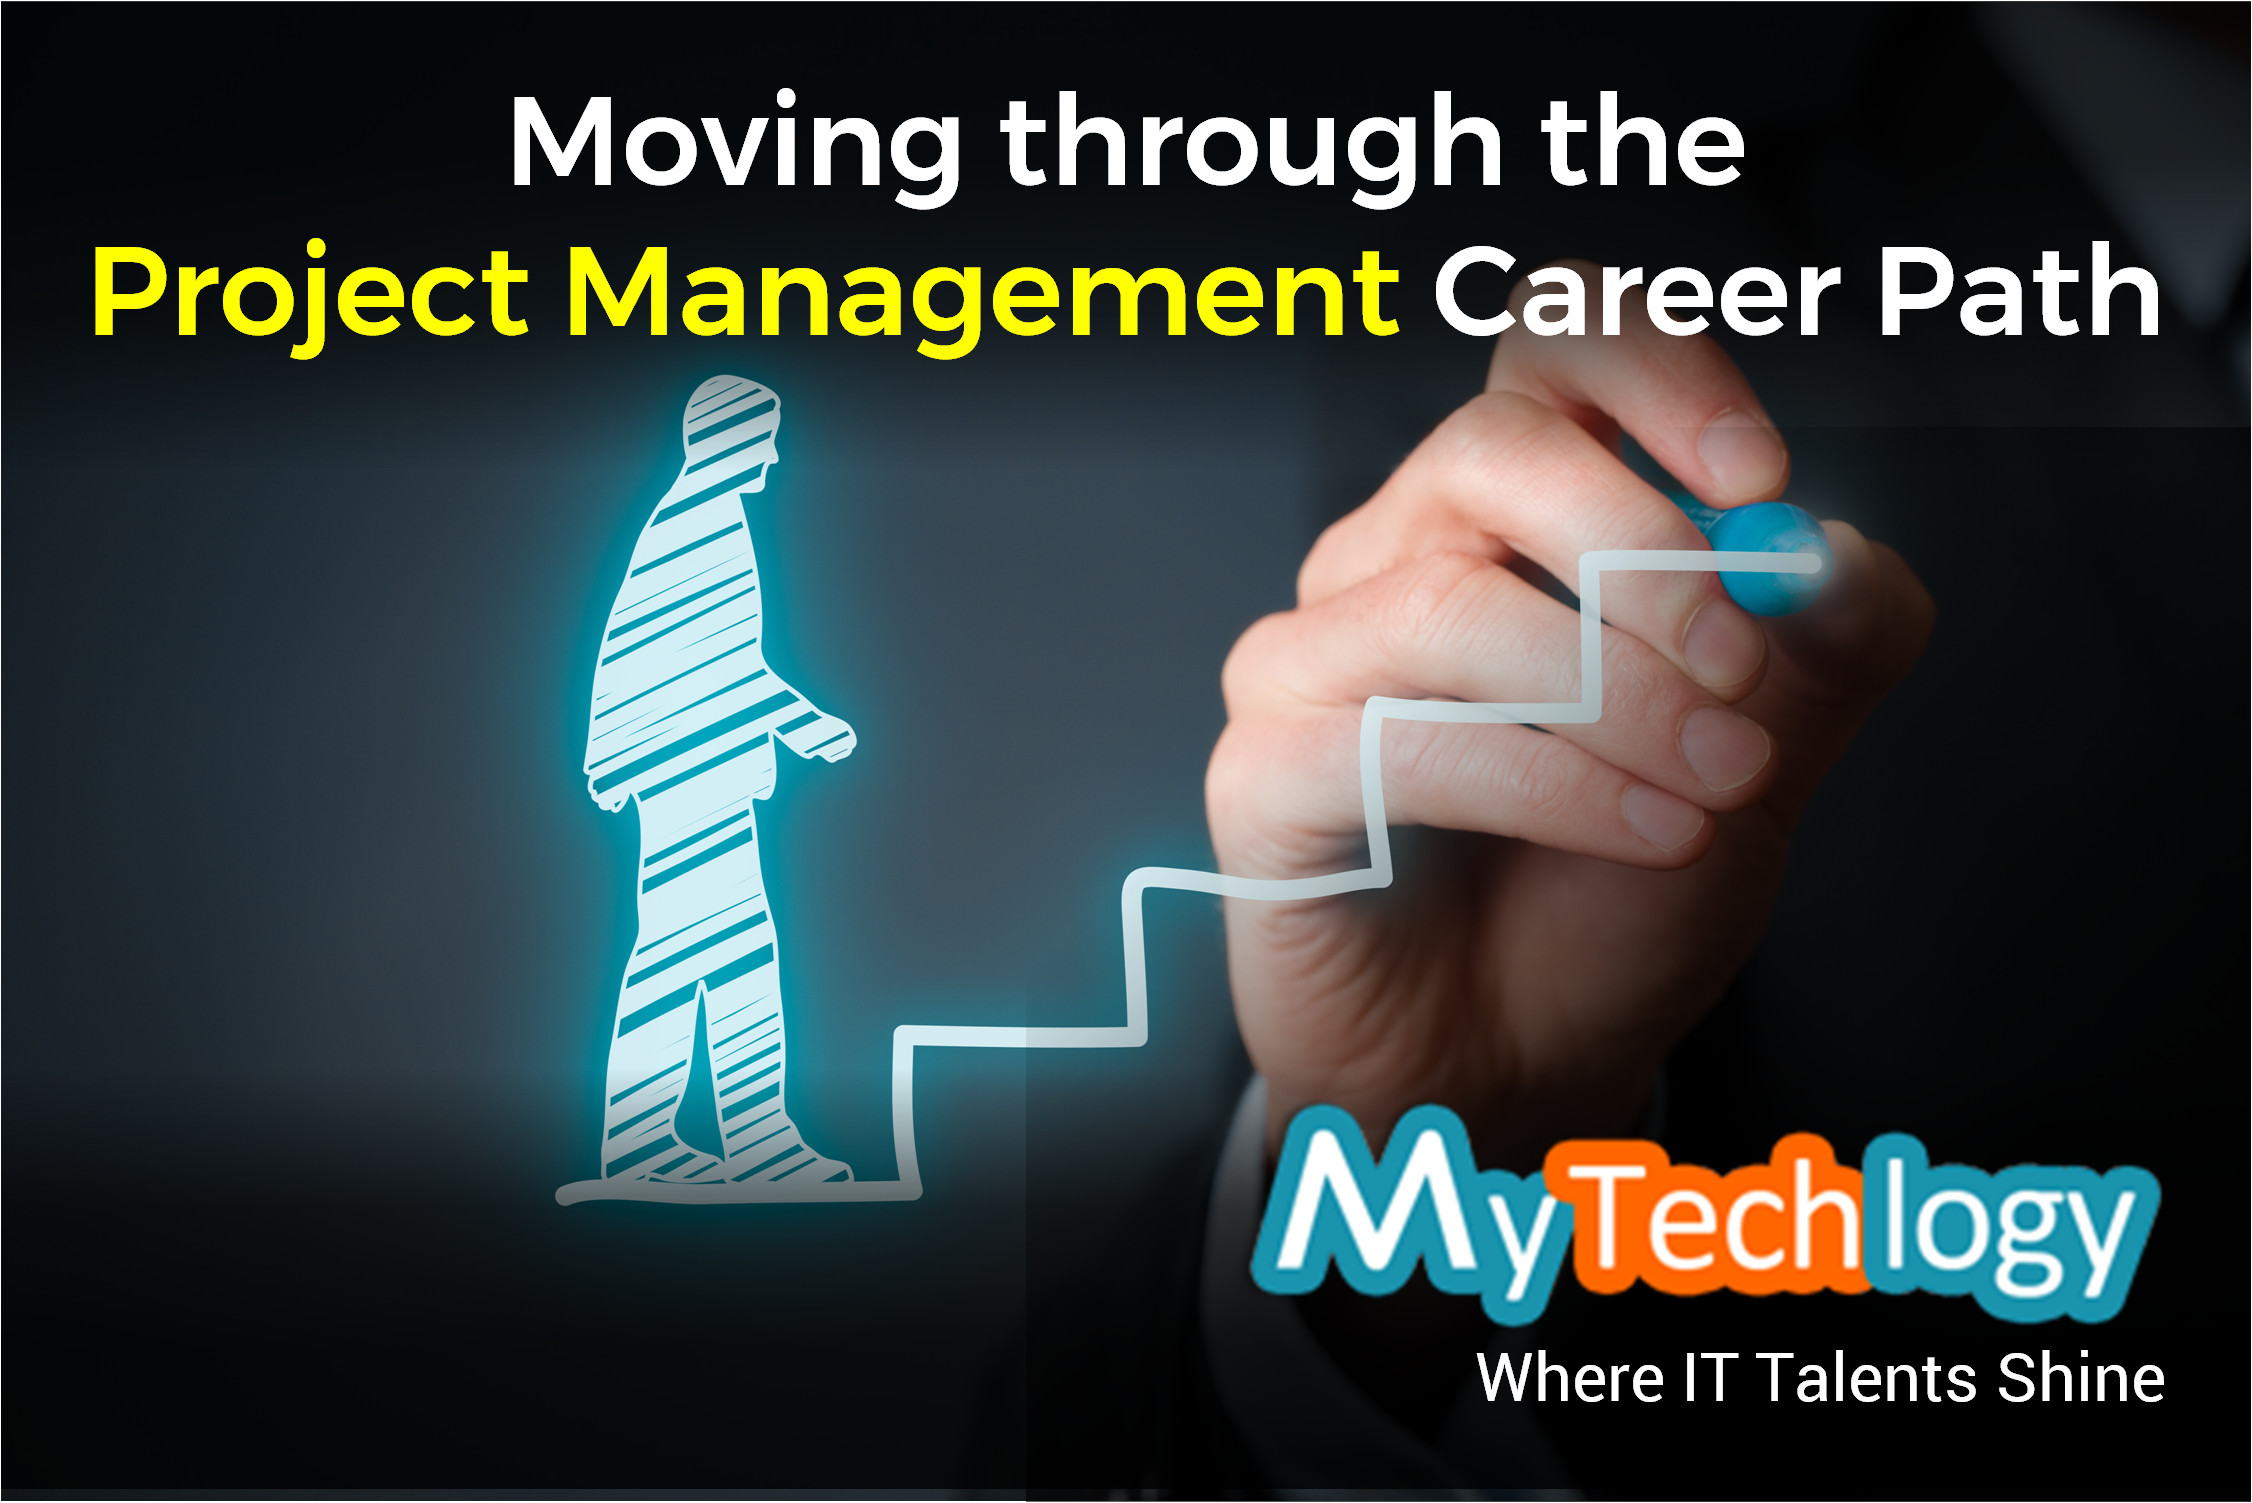 Moving through a project management career path - Image 1